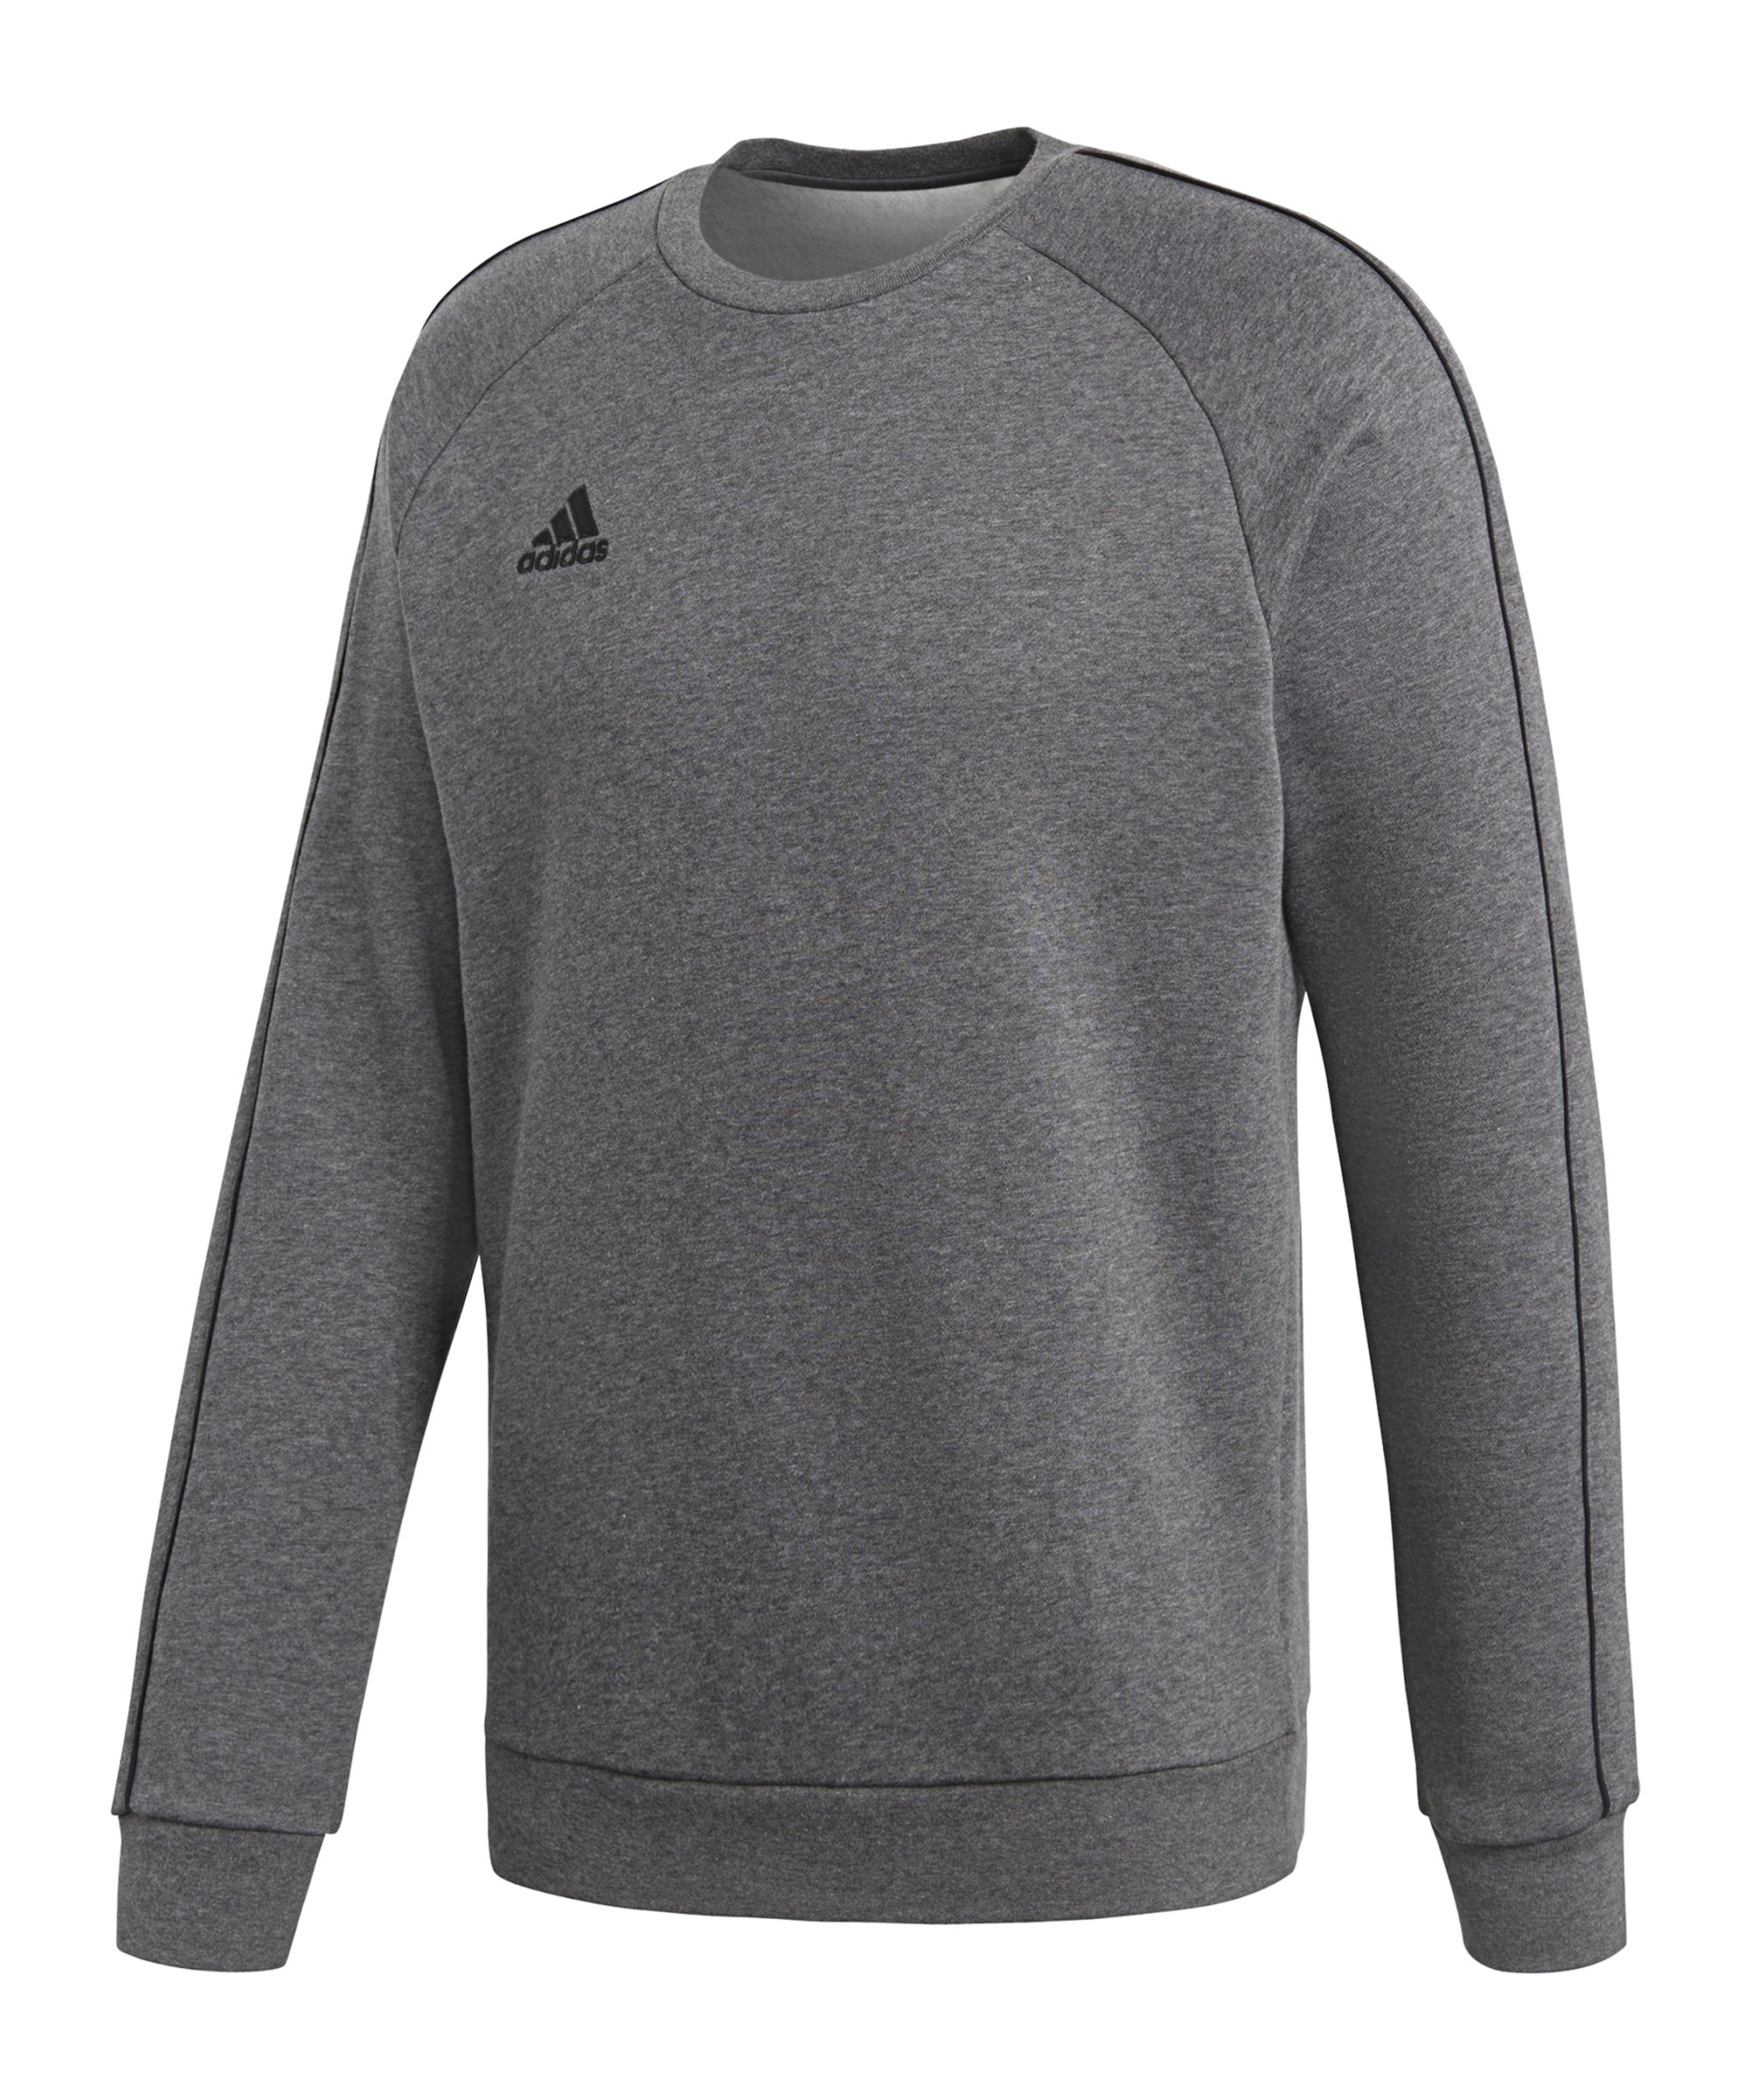 adidas Core 18 Sweat Top Grau Schwarz - grau